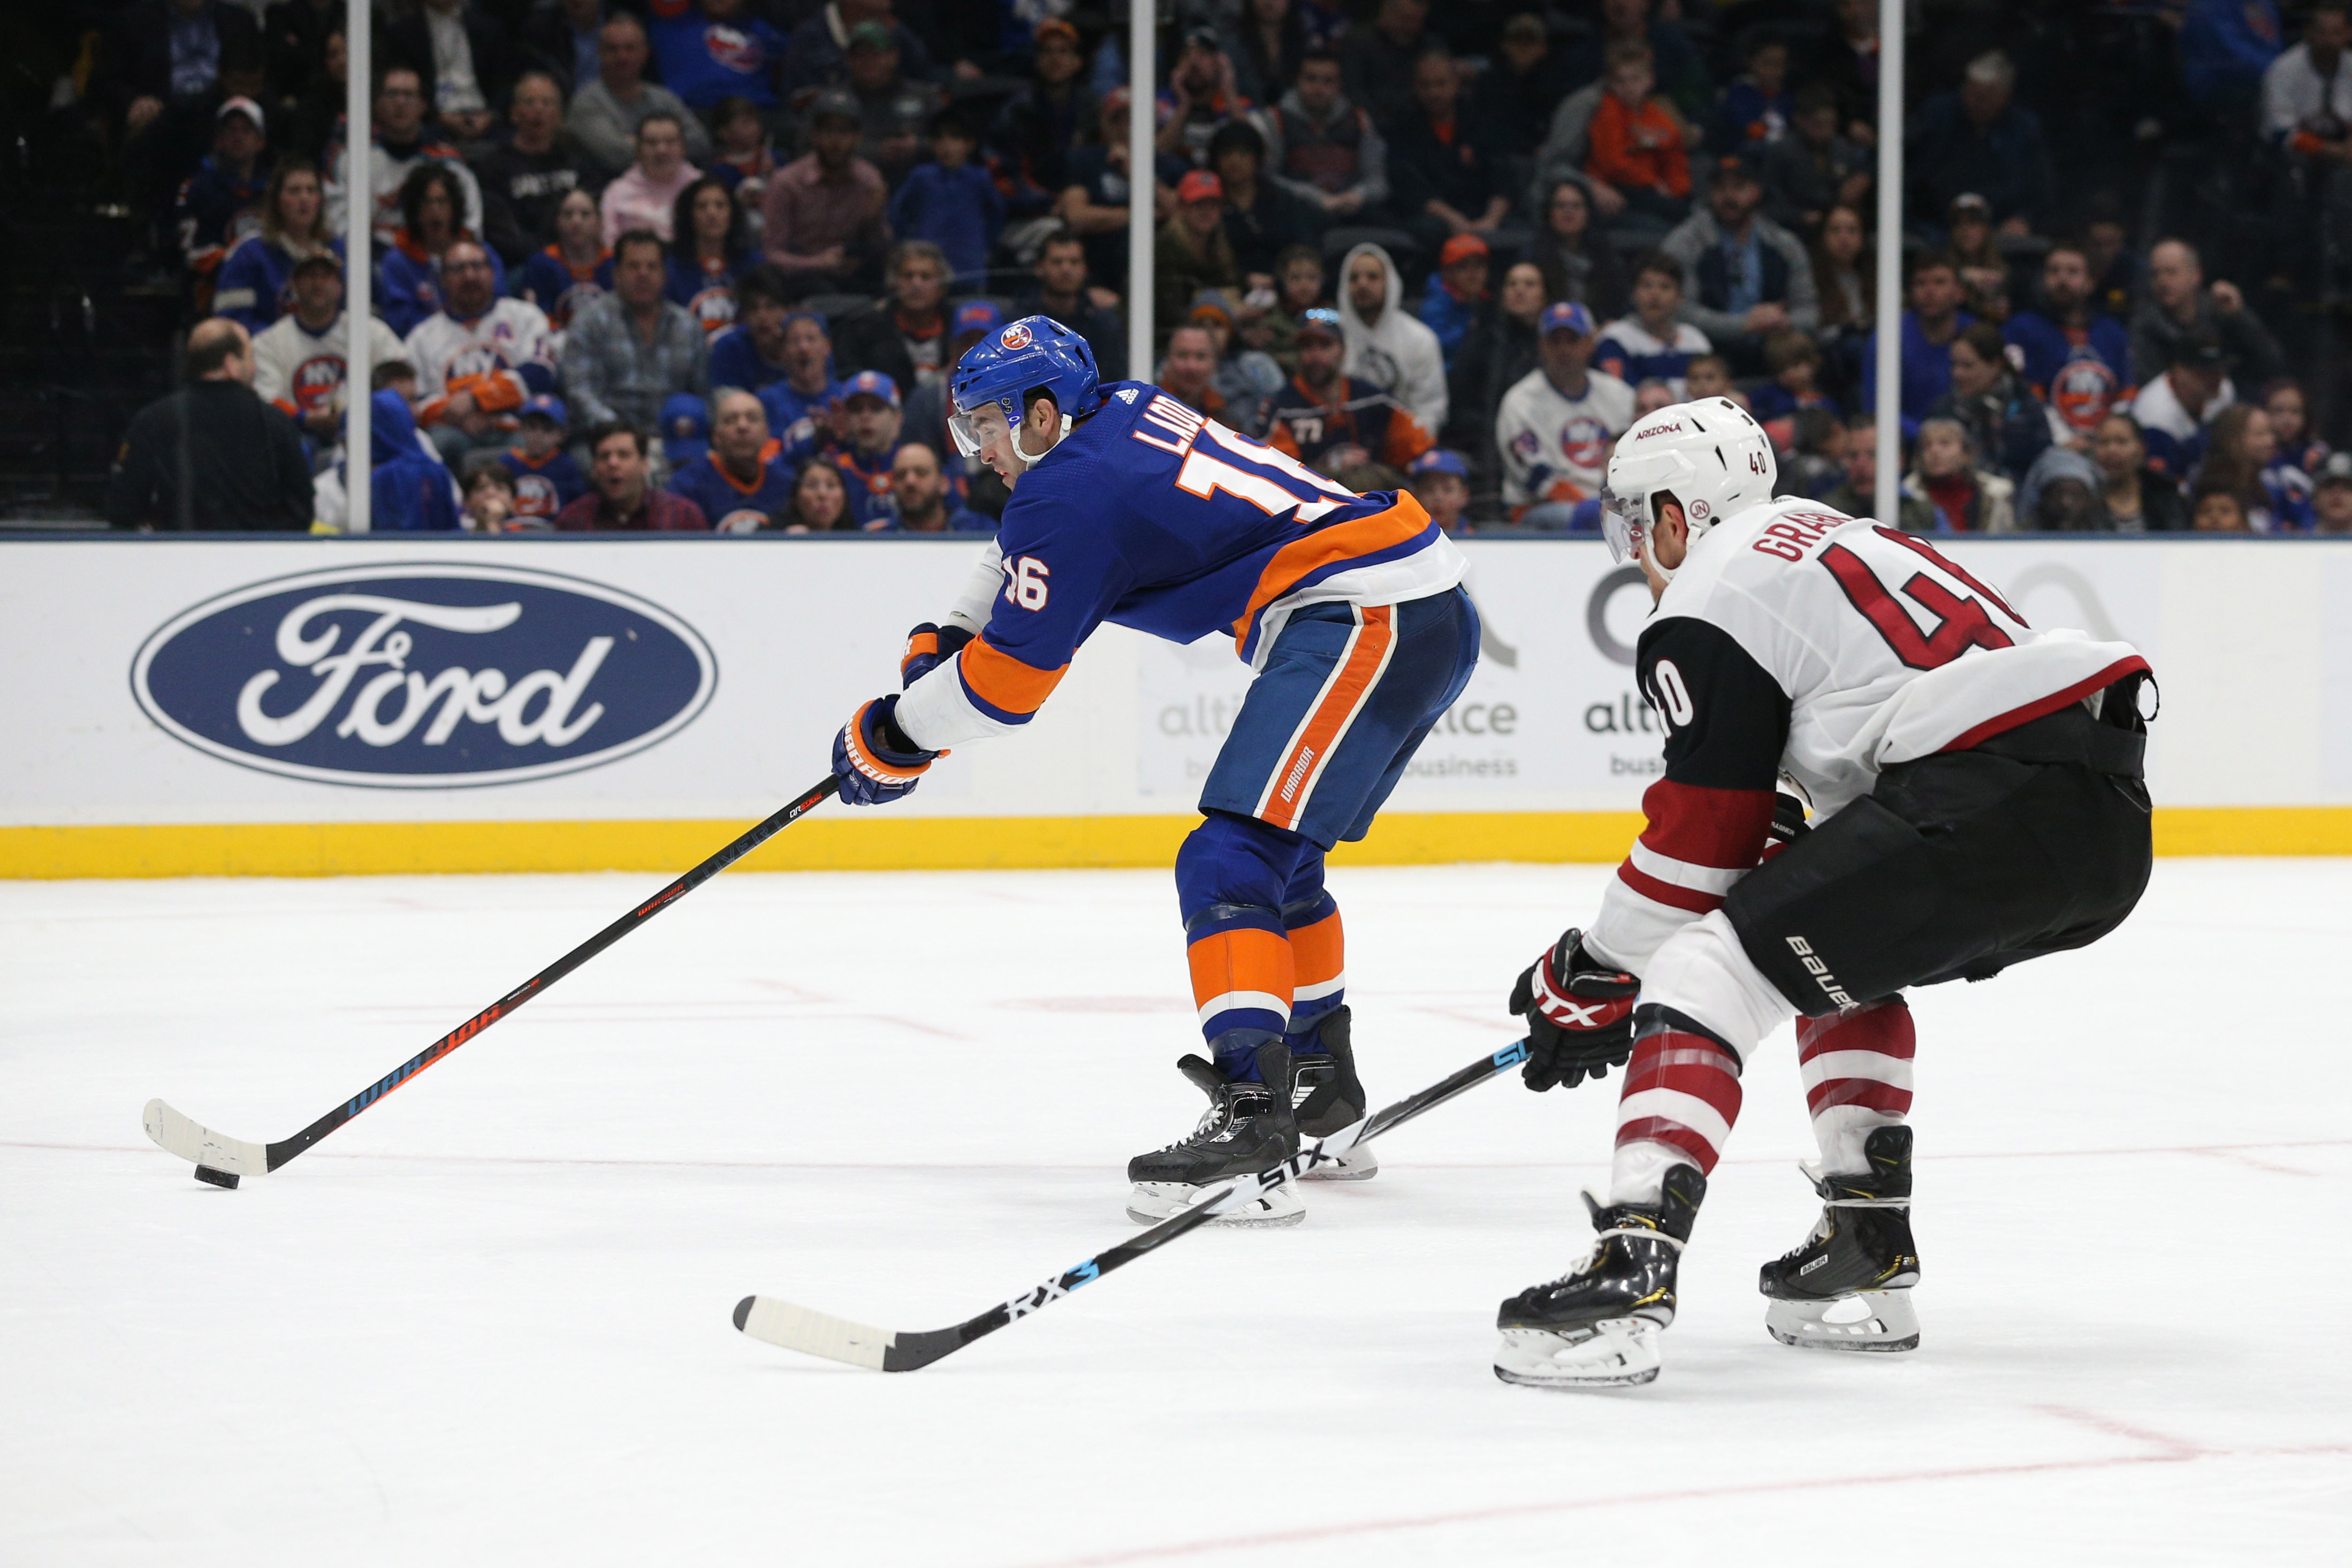 Mar 24, 2019; Uniondale, NY, USA; New York Islanders left wing Andrew Ladd (16) takes a backhanded shot in front of Arizona Coyotes right wing Michael Grabner (40) during the second period at Nassau Veterans Memorial Coliseum. Mandatory Credit: Brad Penner-USA TODAY Sports